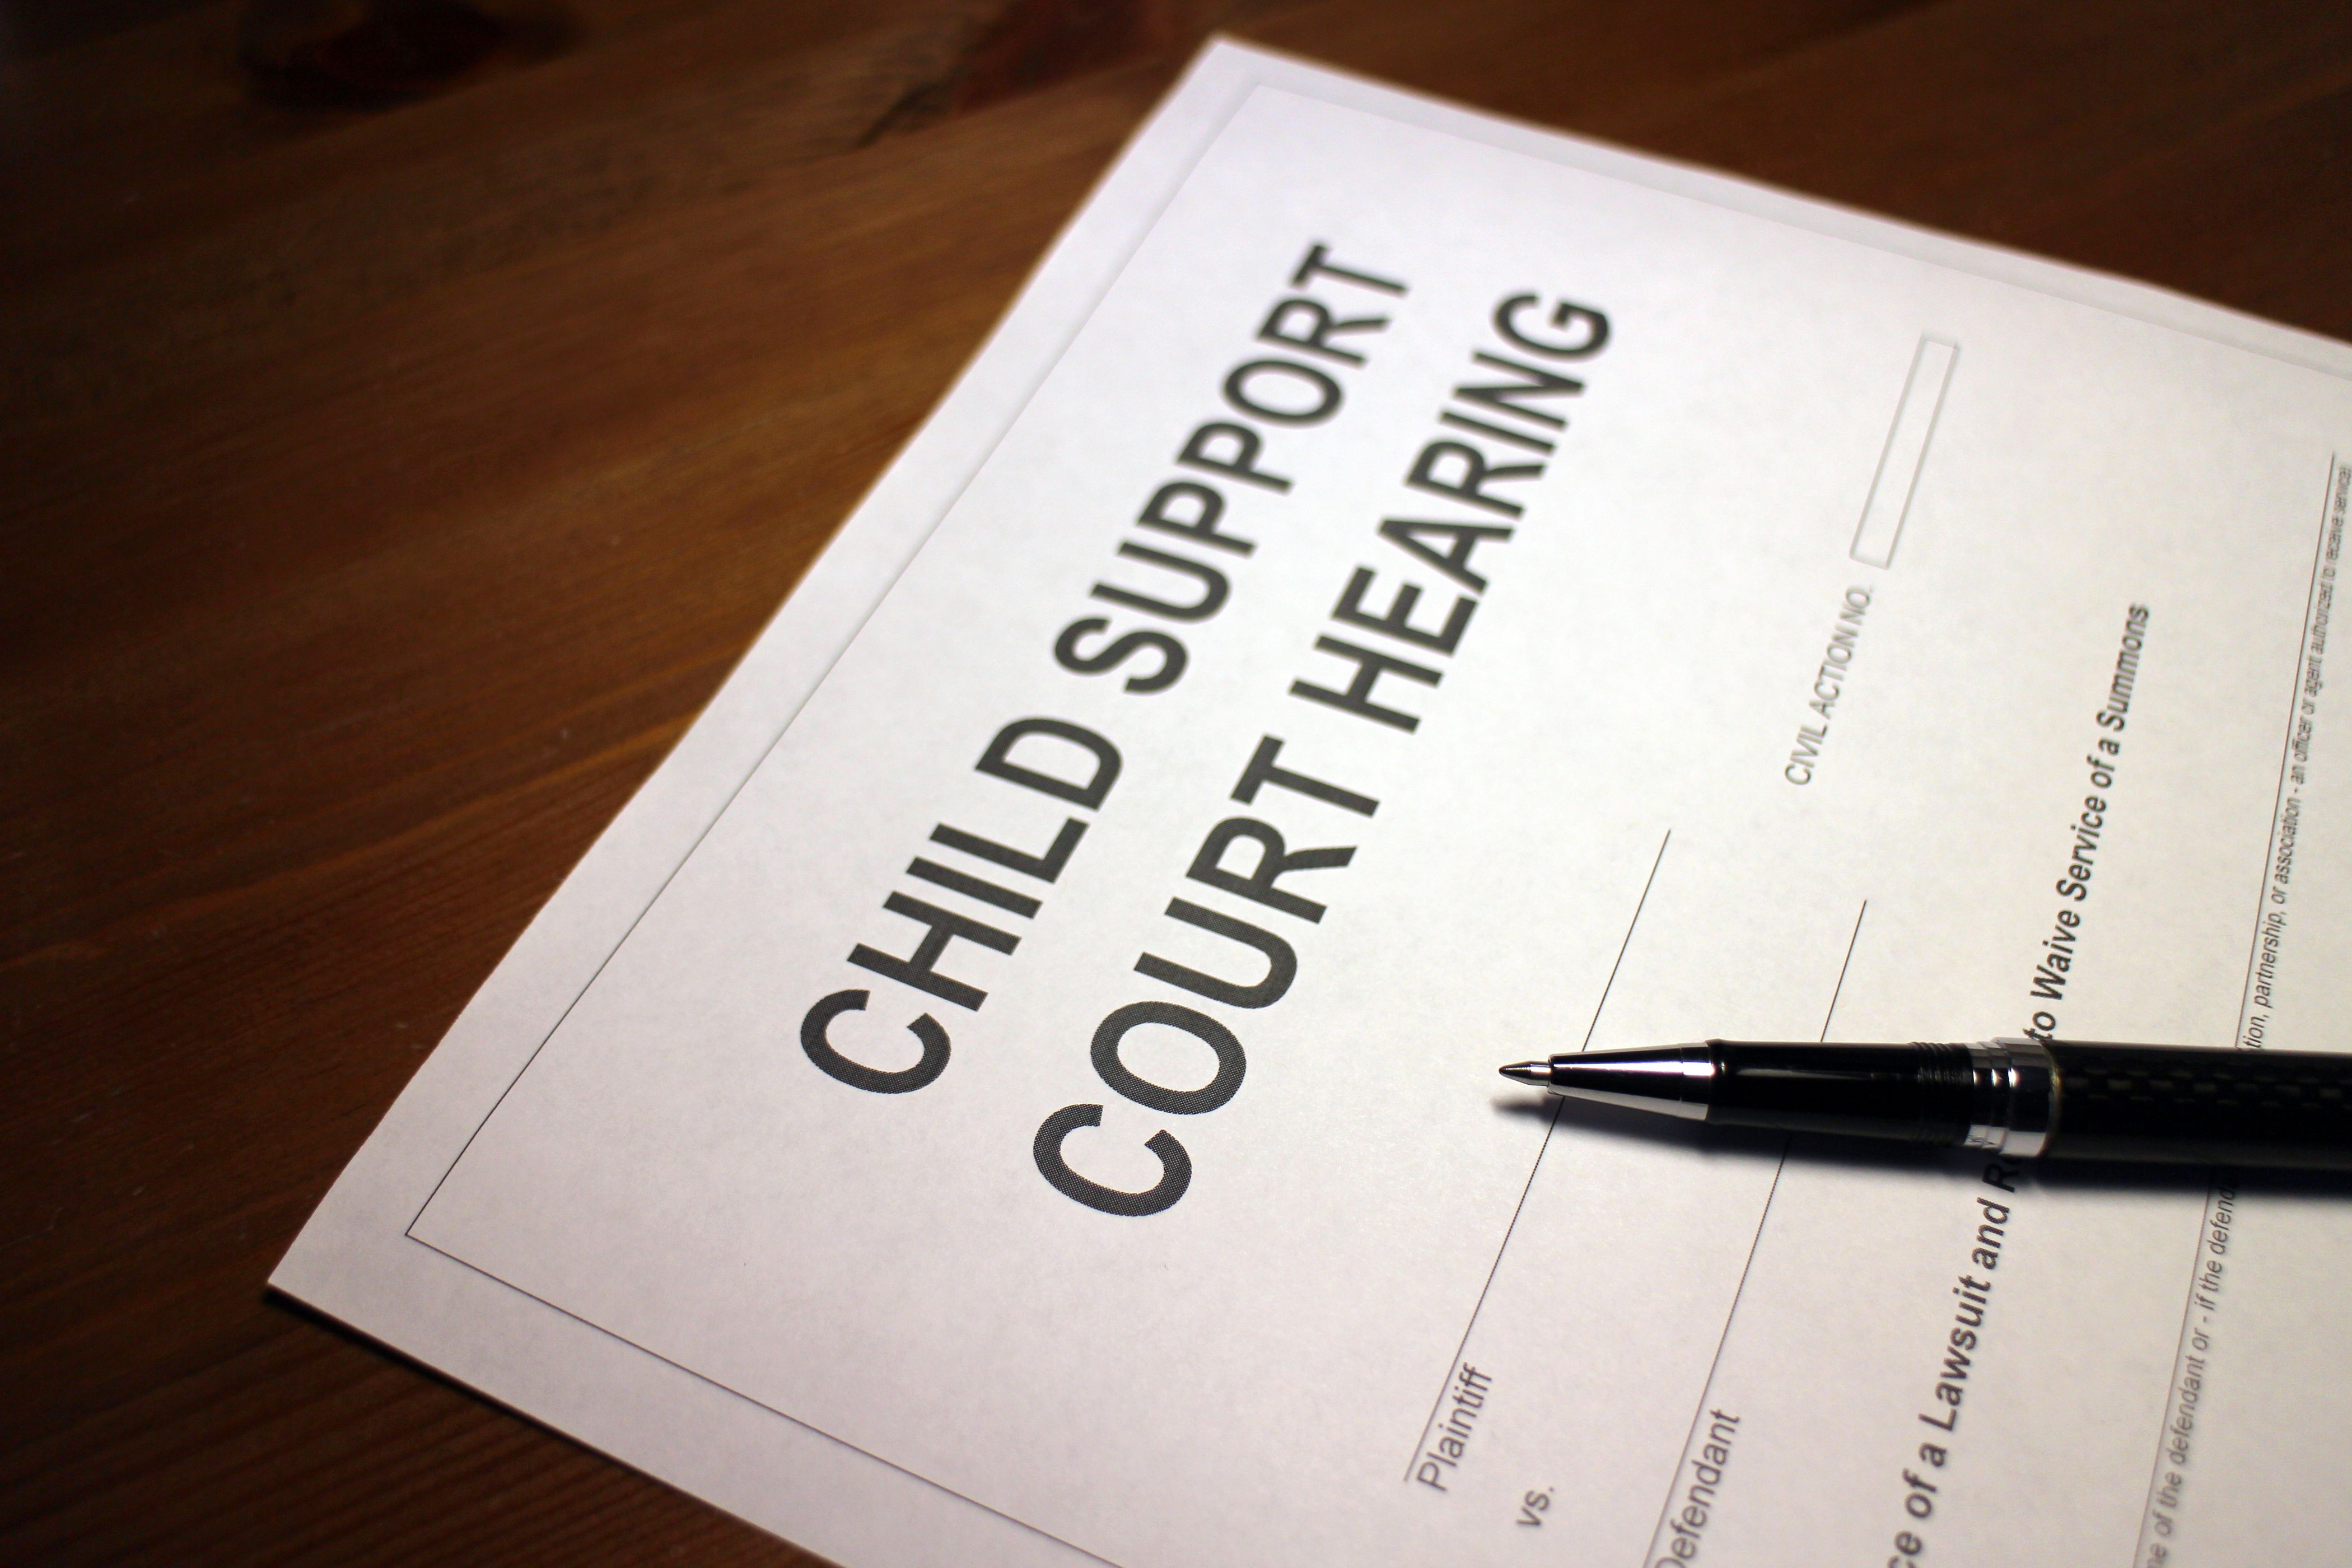 Binding Child Support Agreements